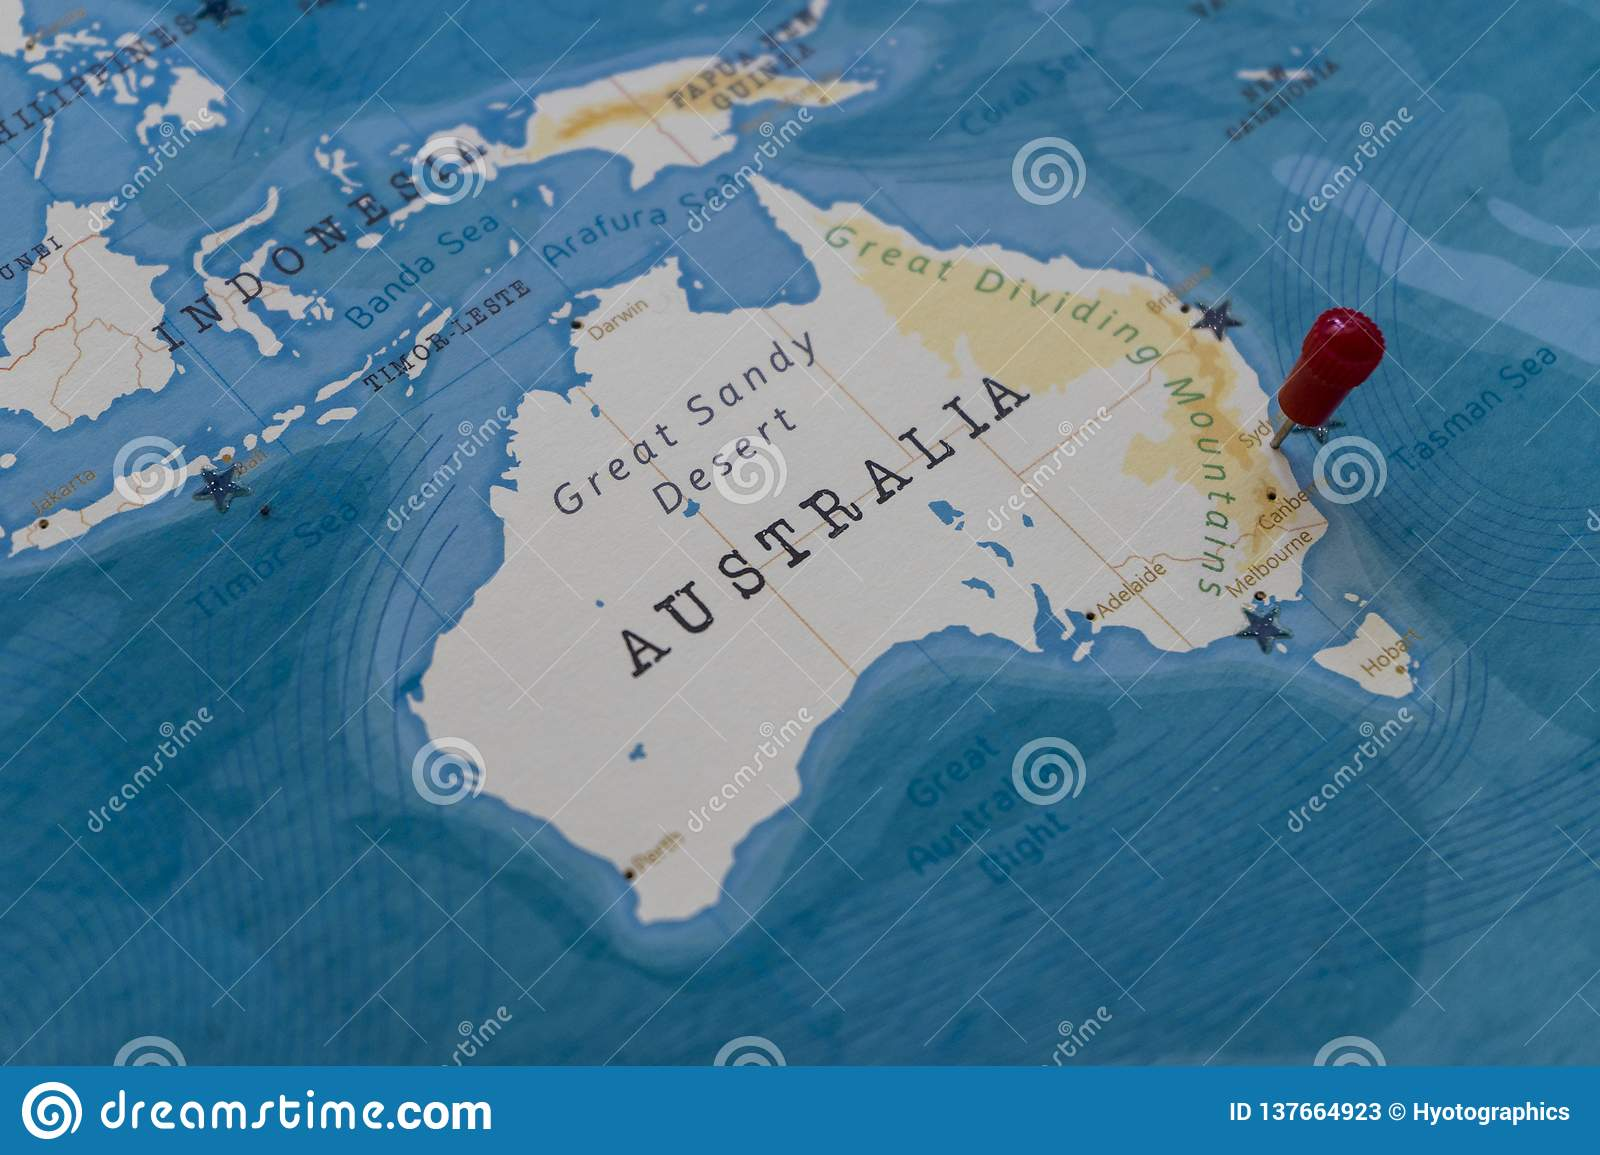 Sydney Australia World Map.A Pin On Sydney Australia In The World Map Stock Image Image Of